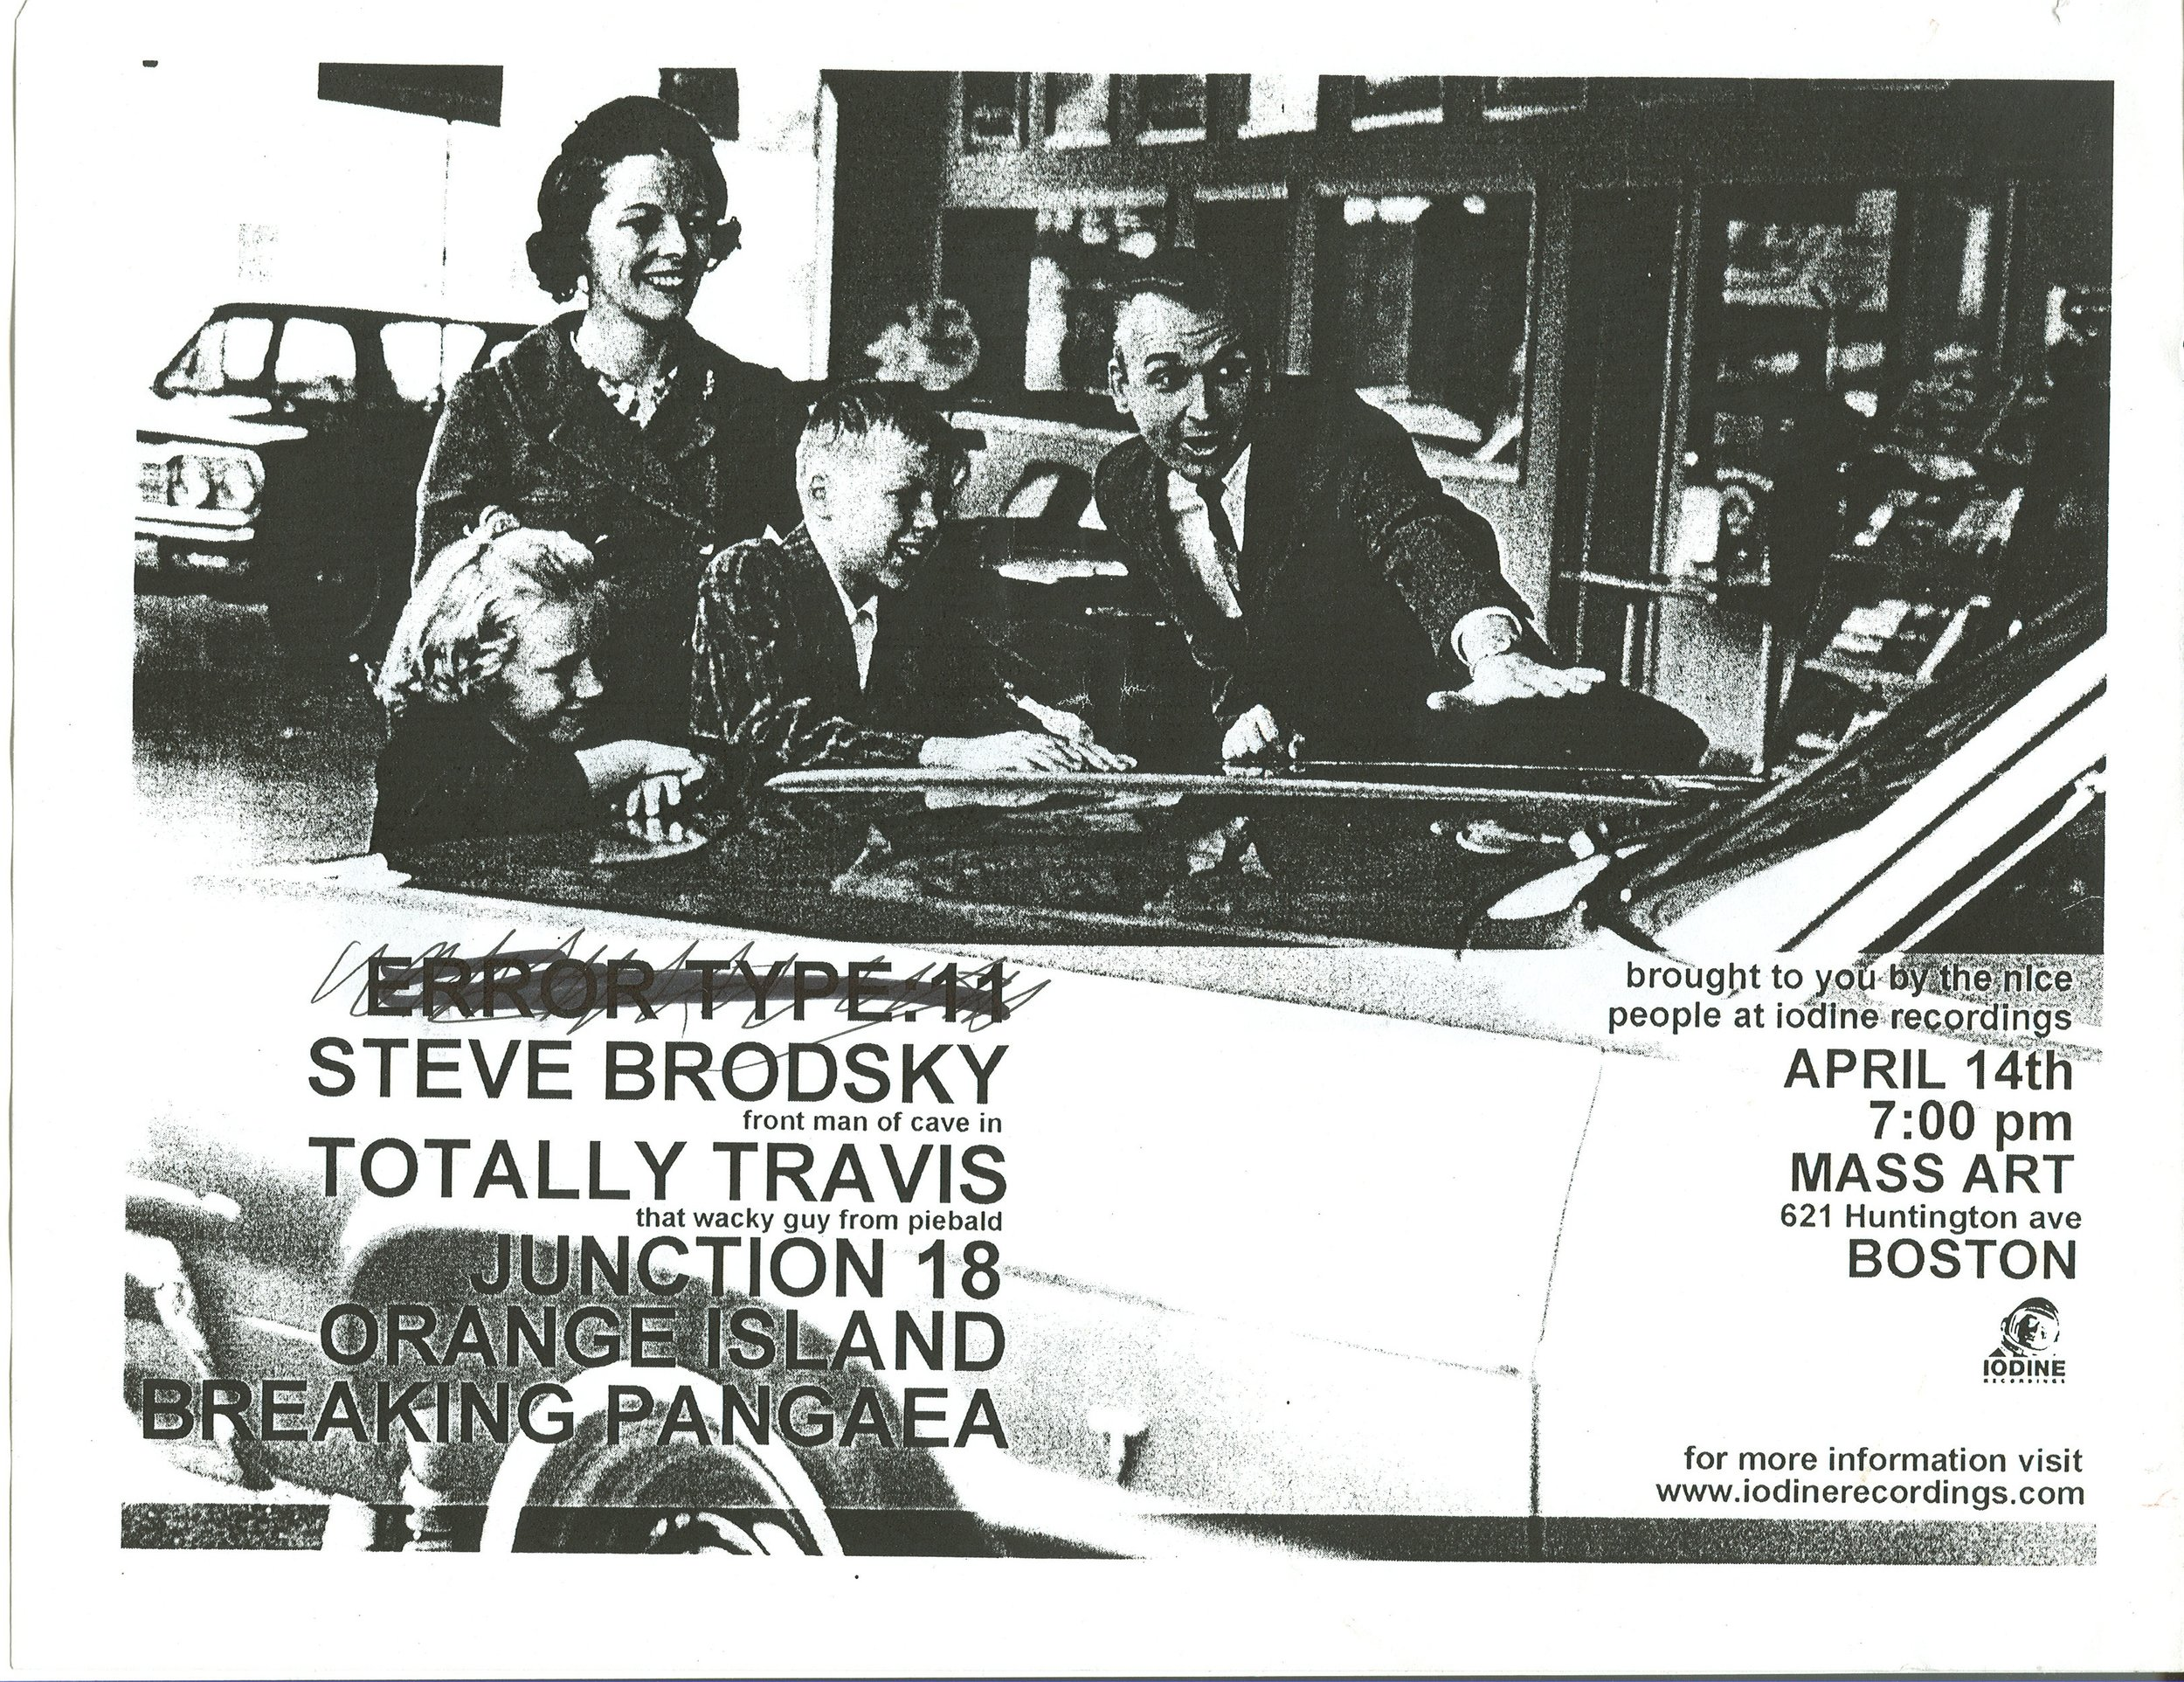 04.14.02-BOSTON-MASSART-STEVE_BRODSKY.jpg